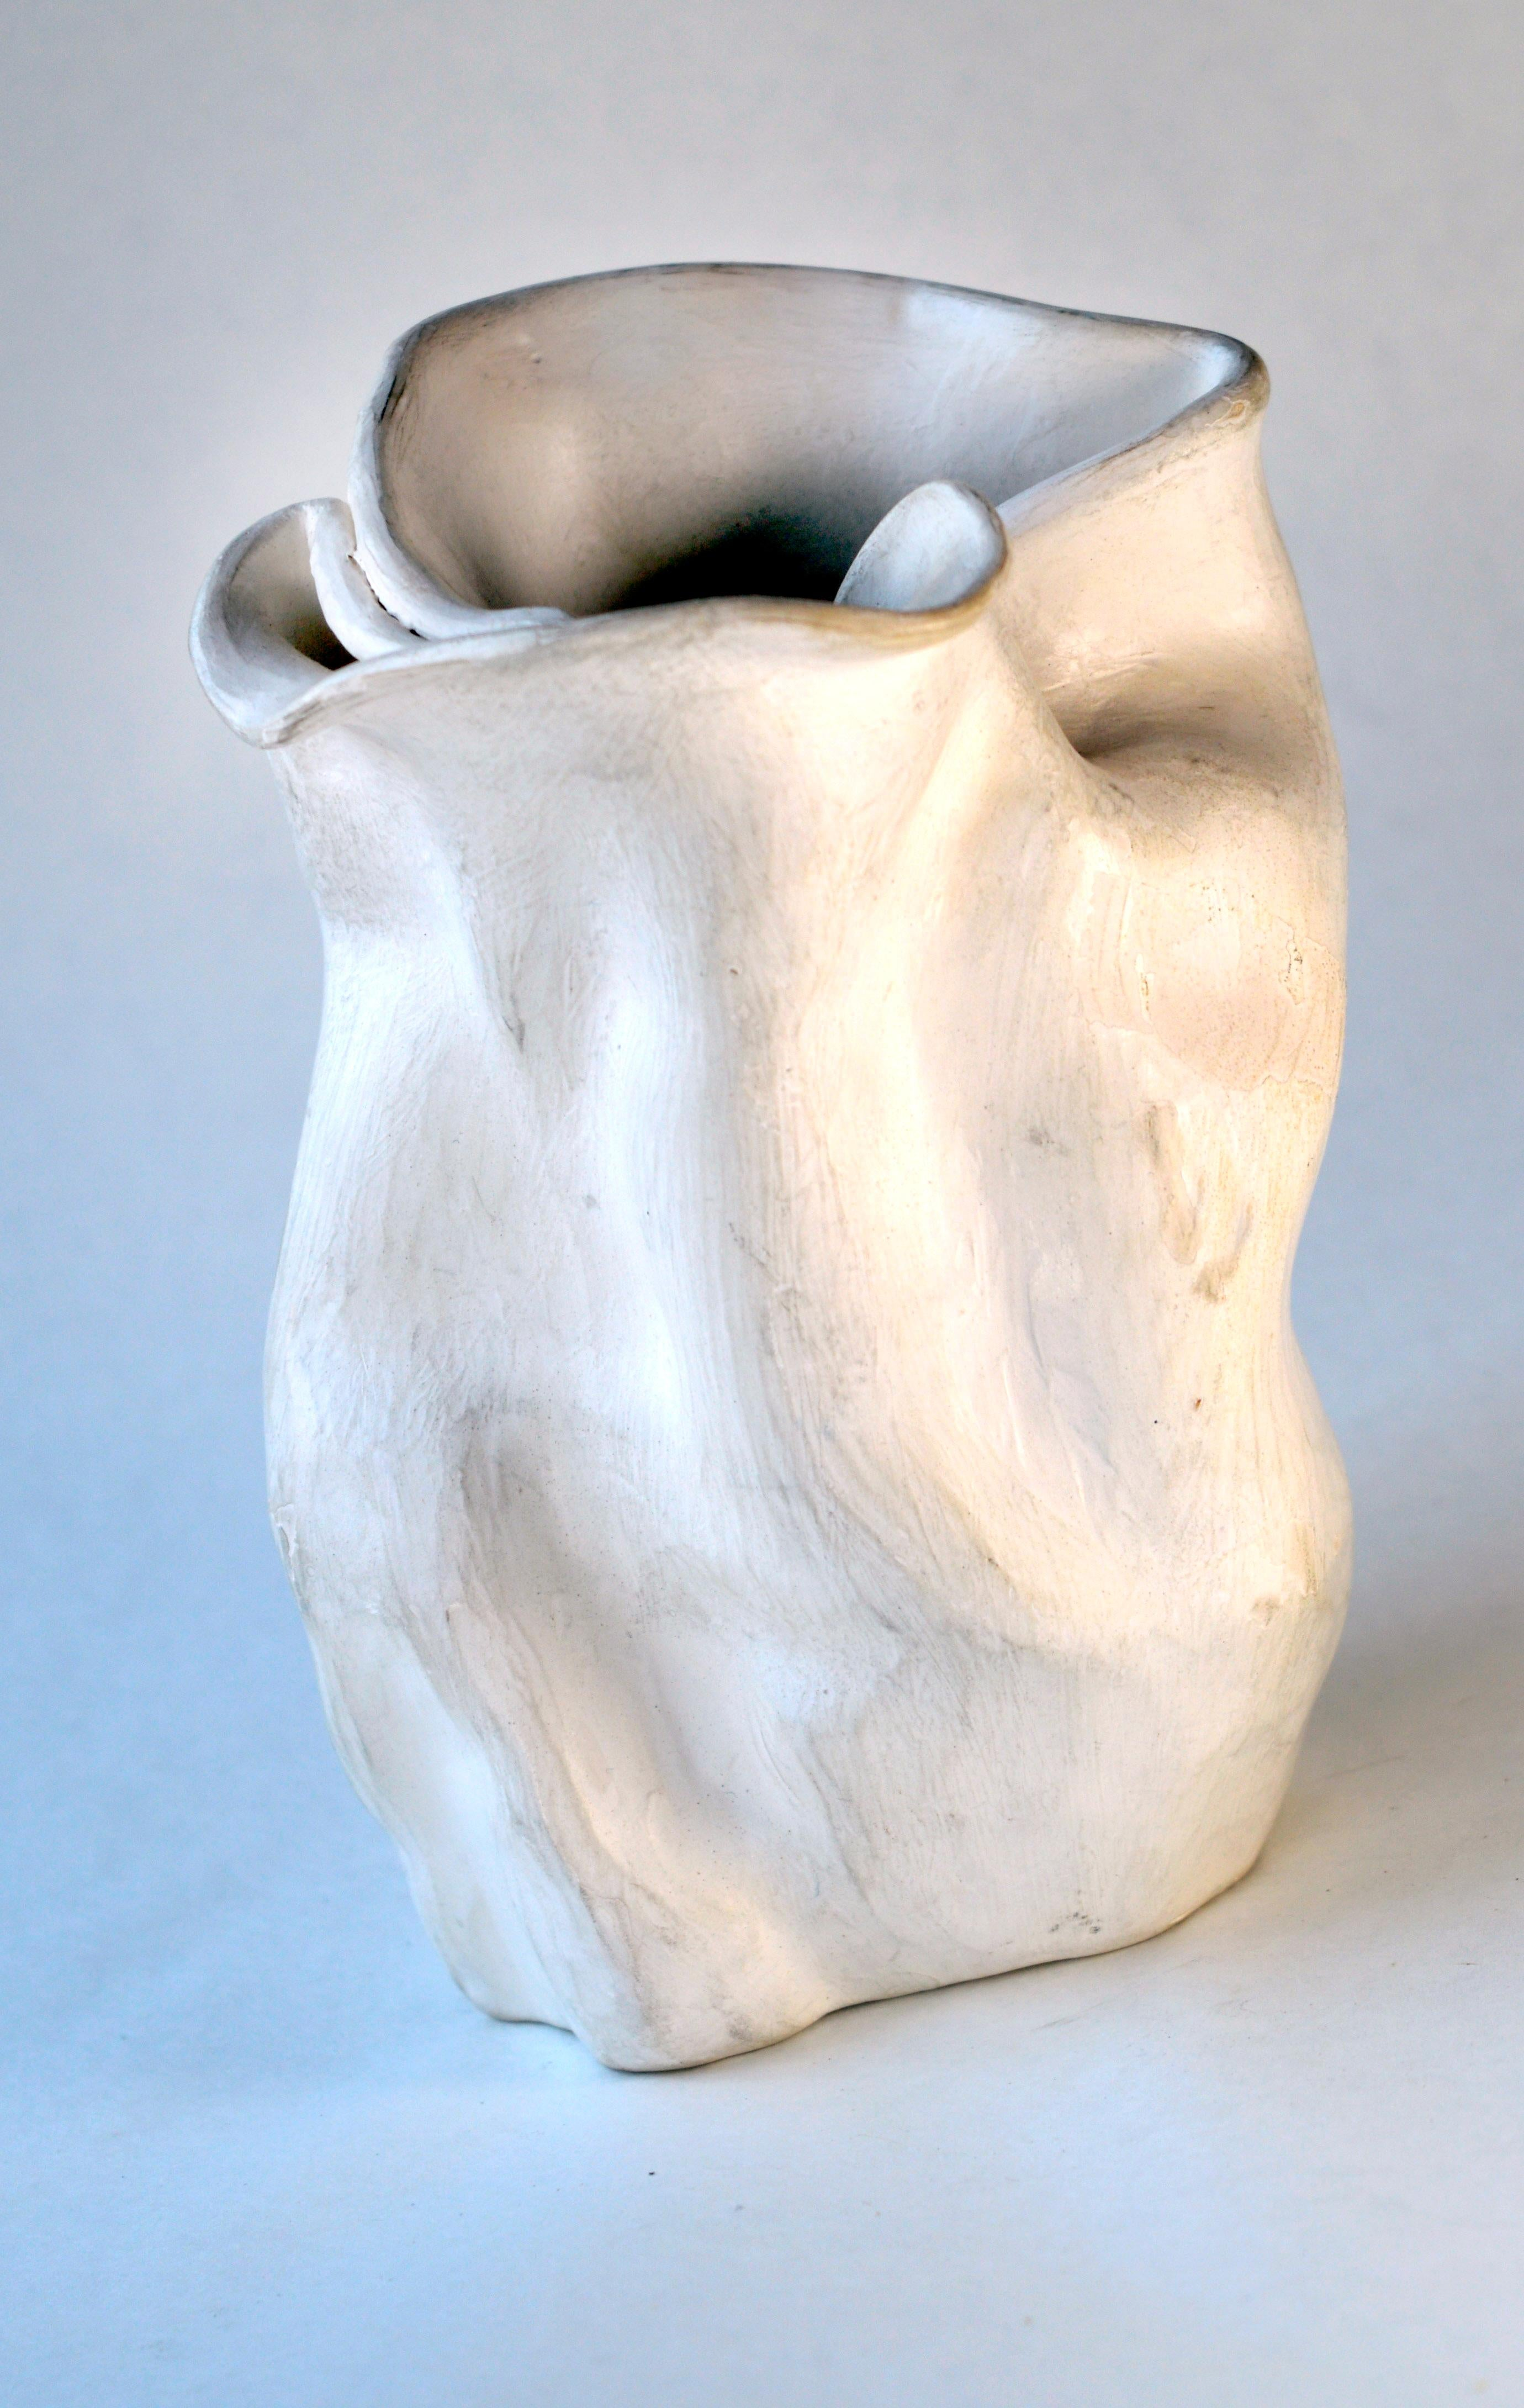 Early 1940s Abstract Pottery Vase #2 after George Ohr